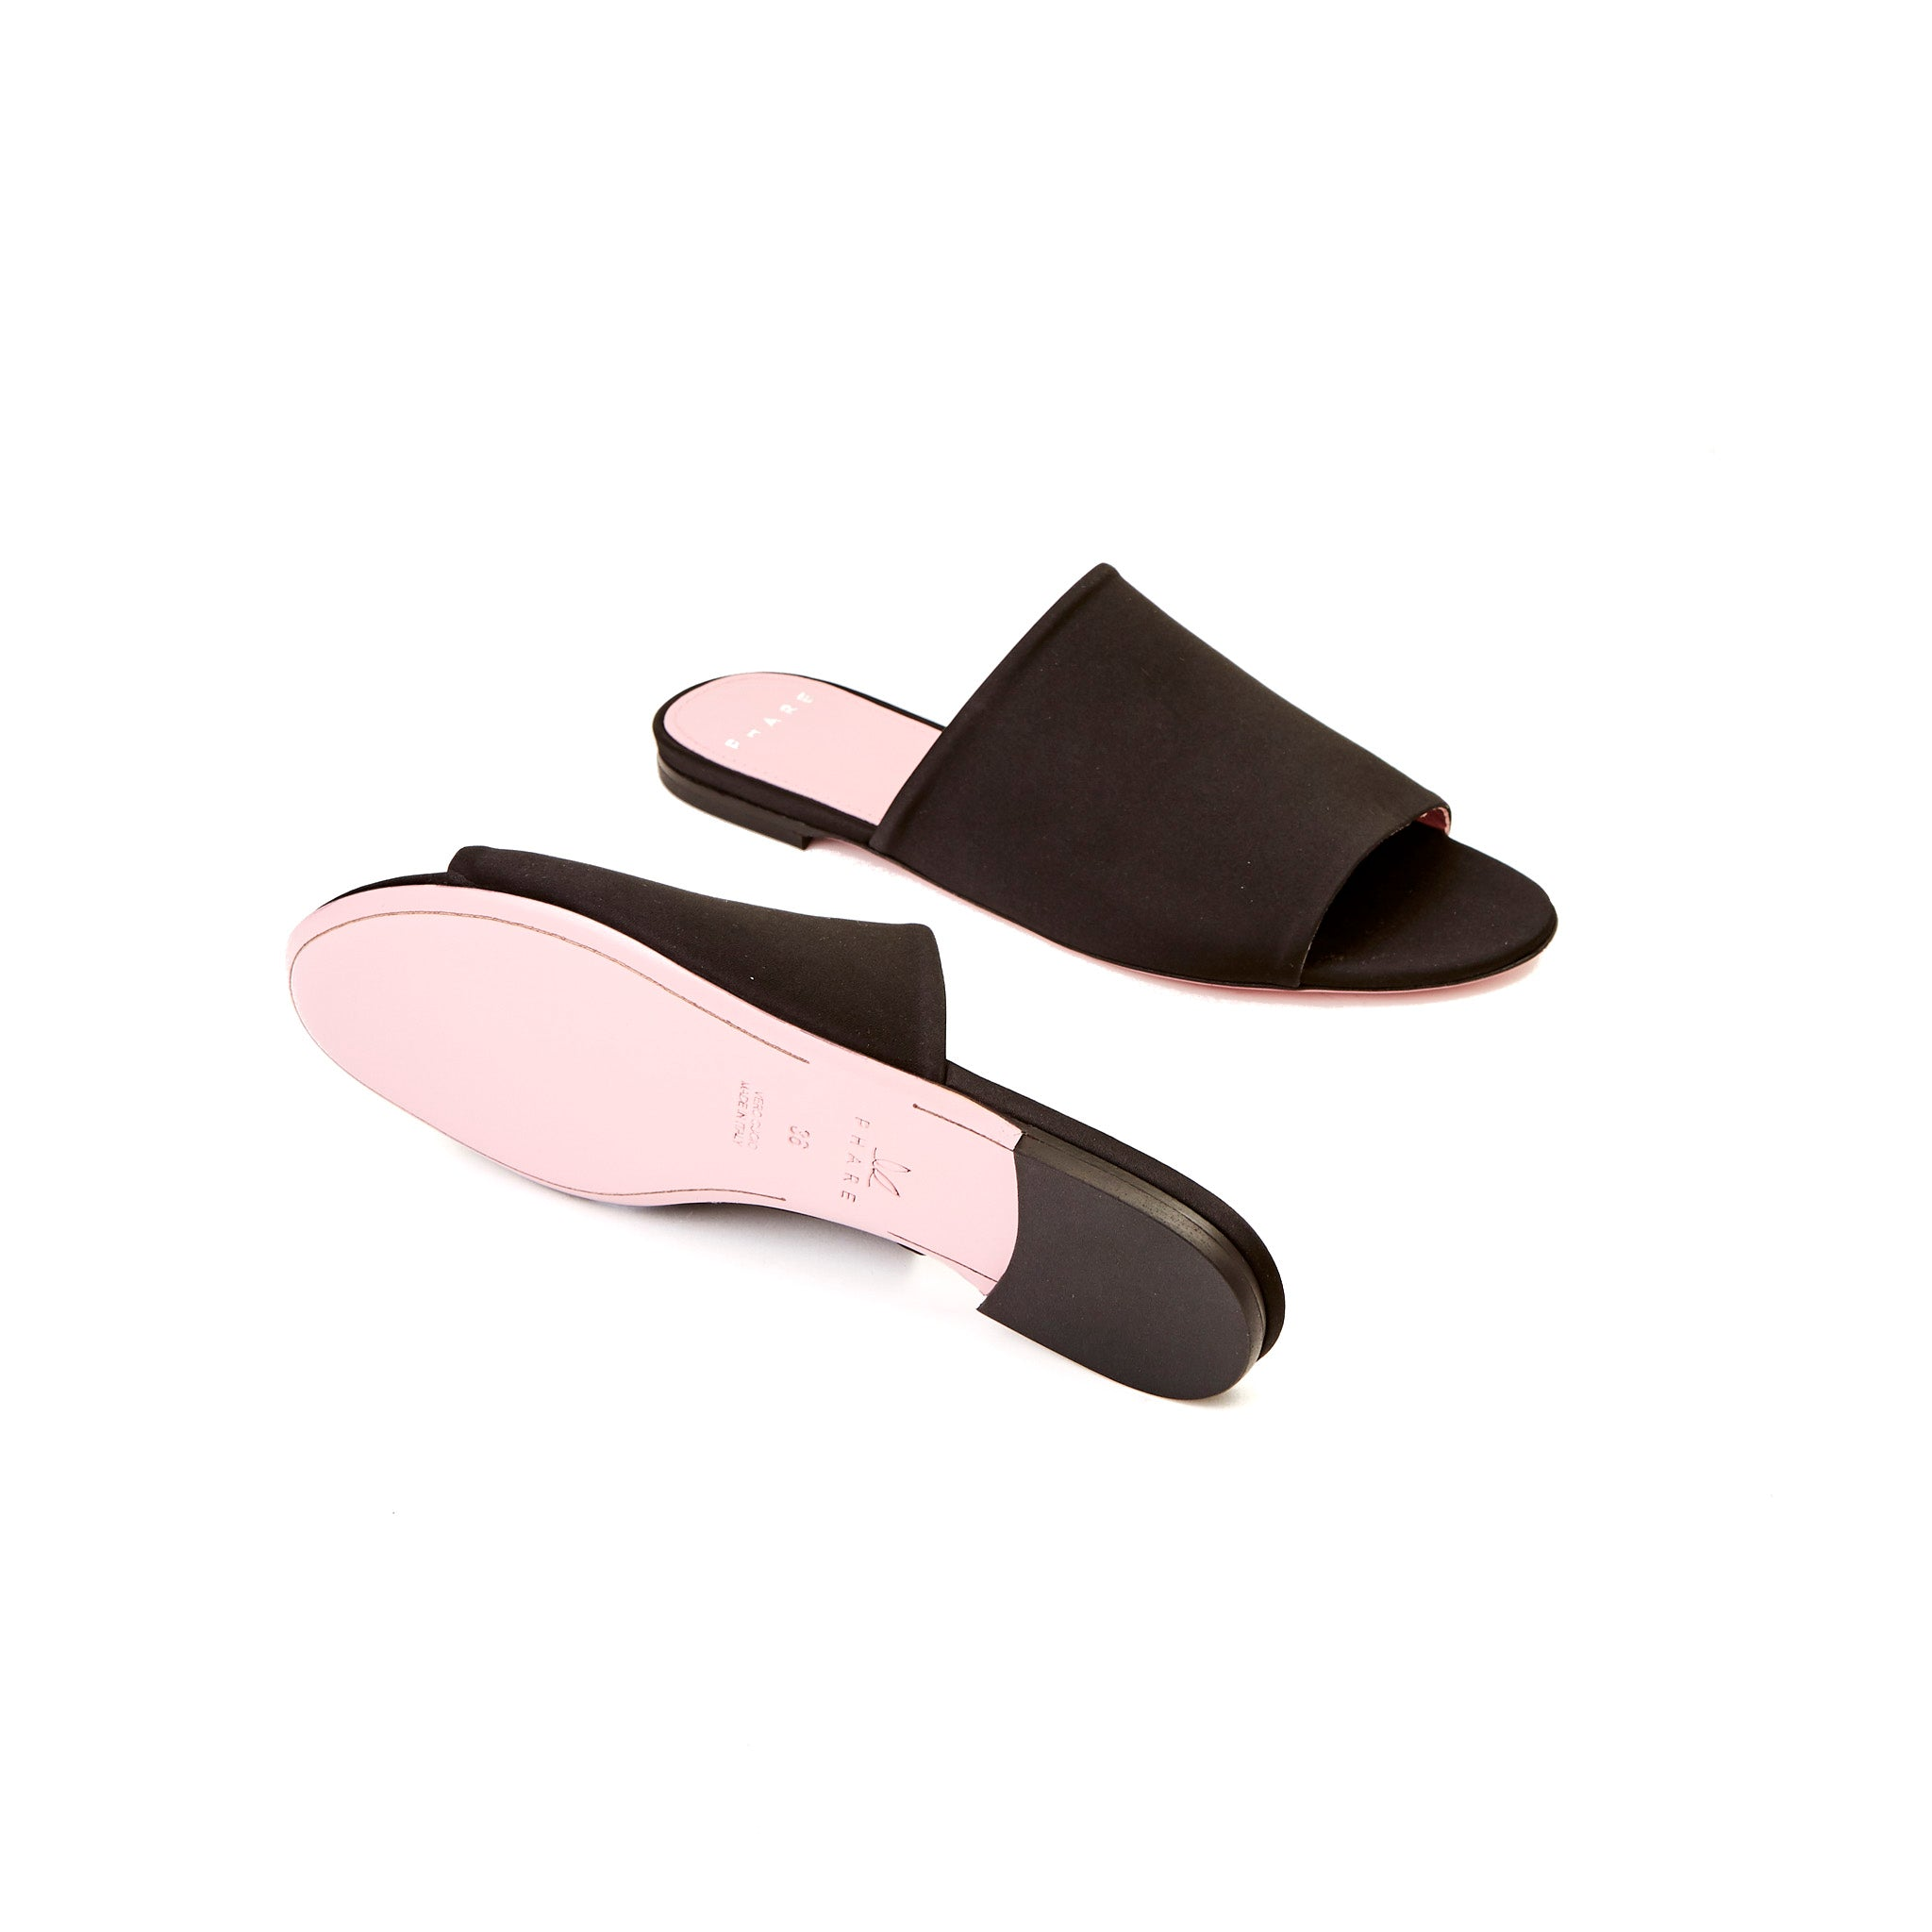 Phare Seta slide in black silk satin sole view